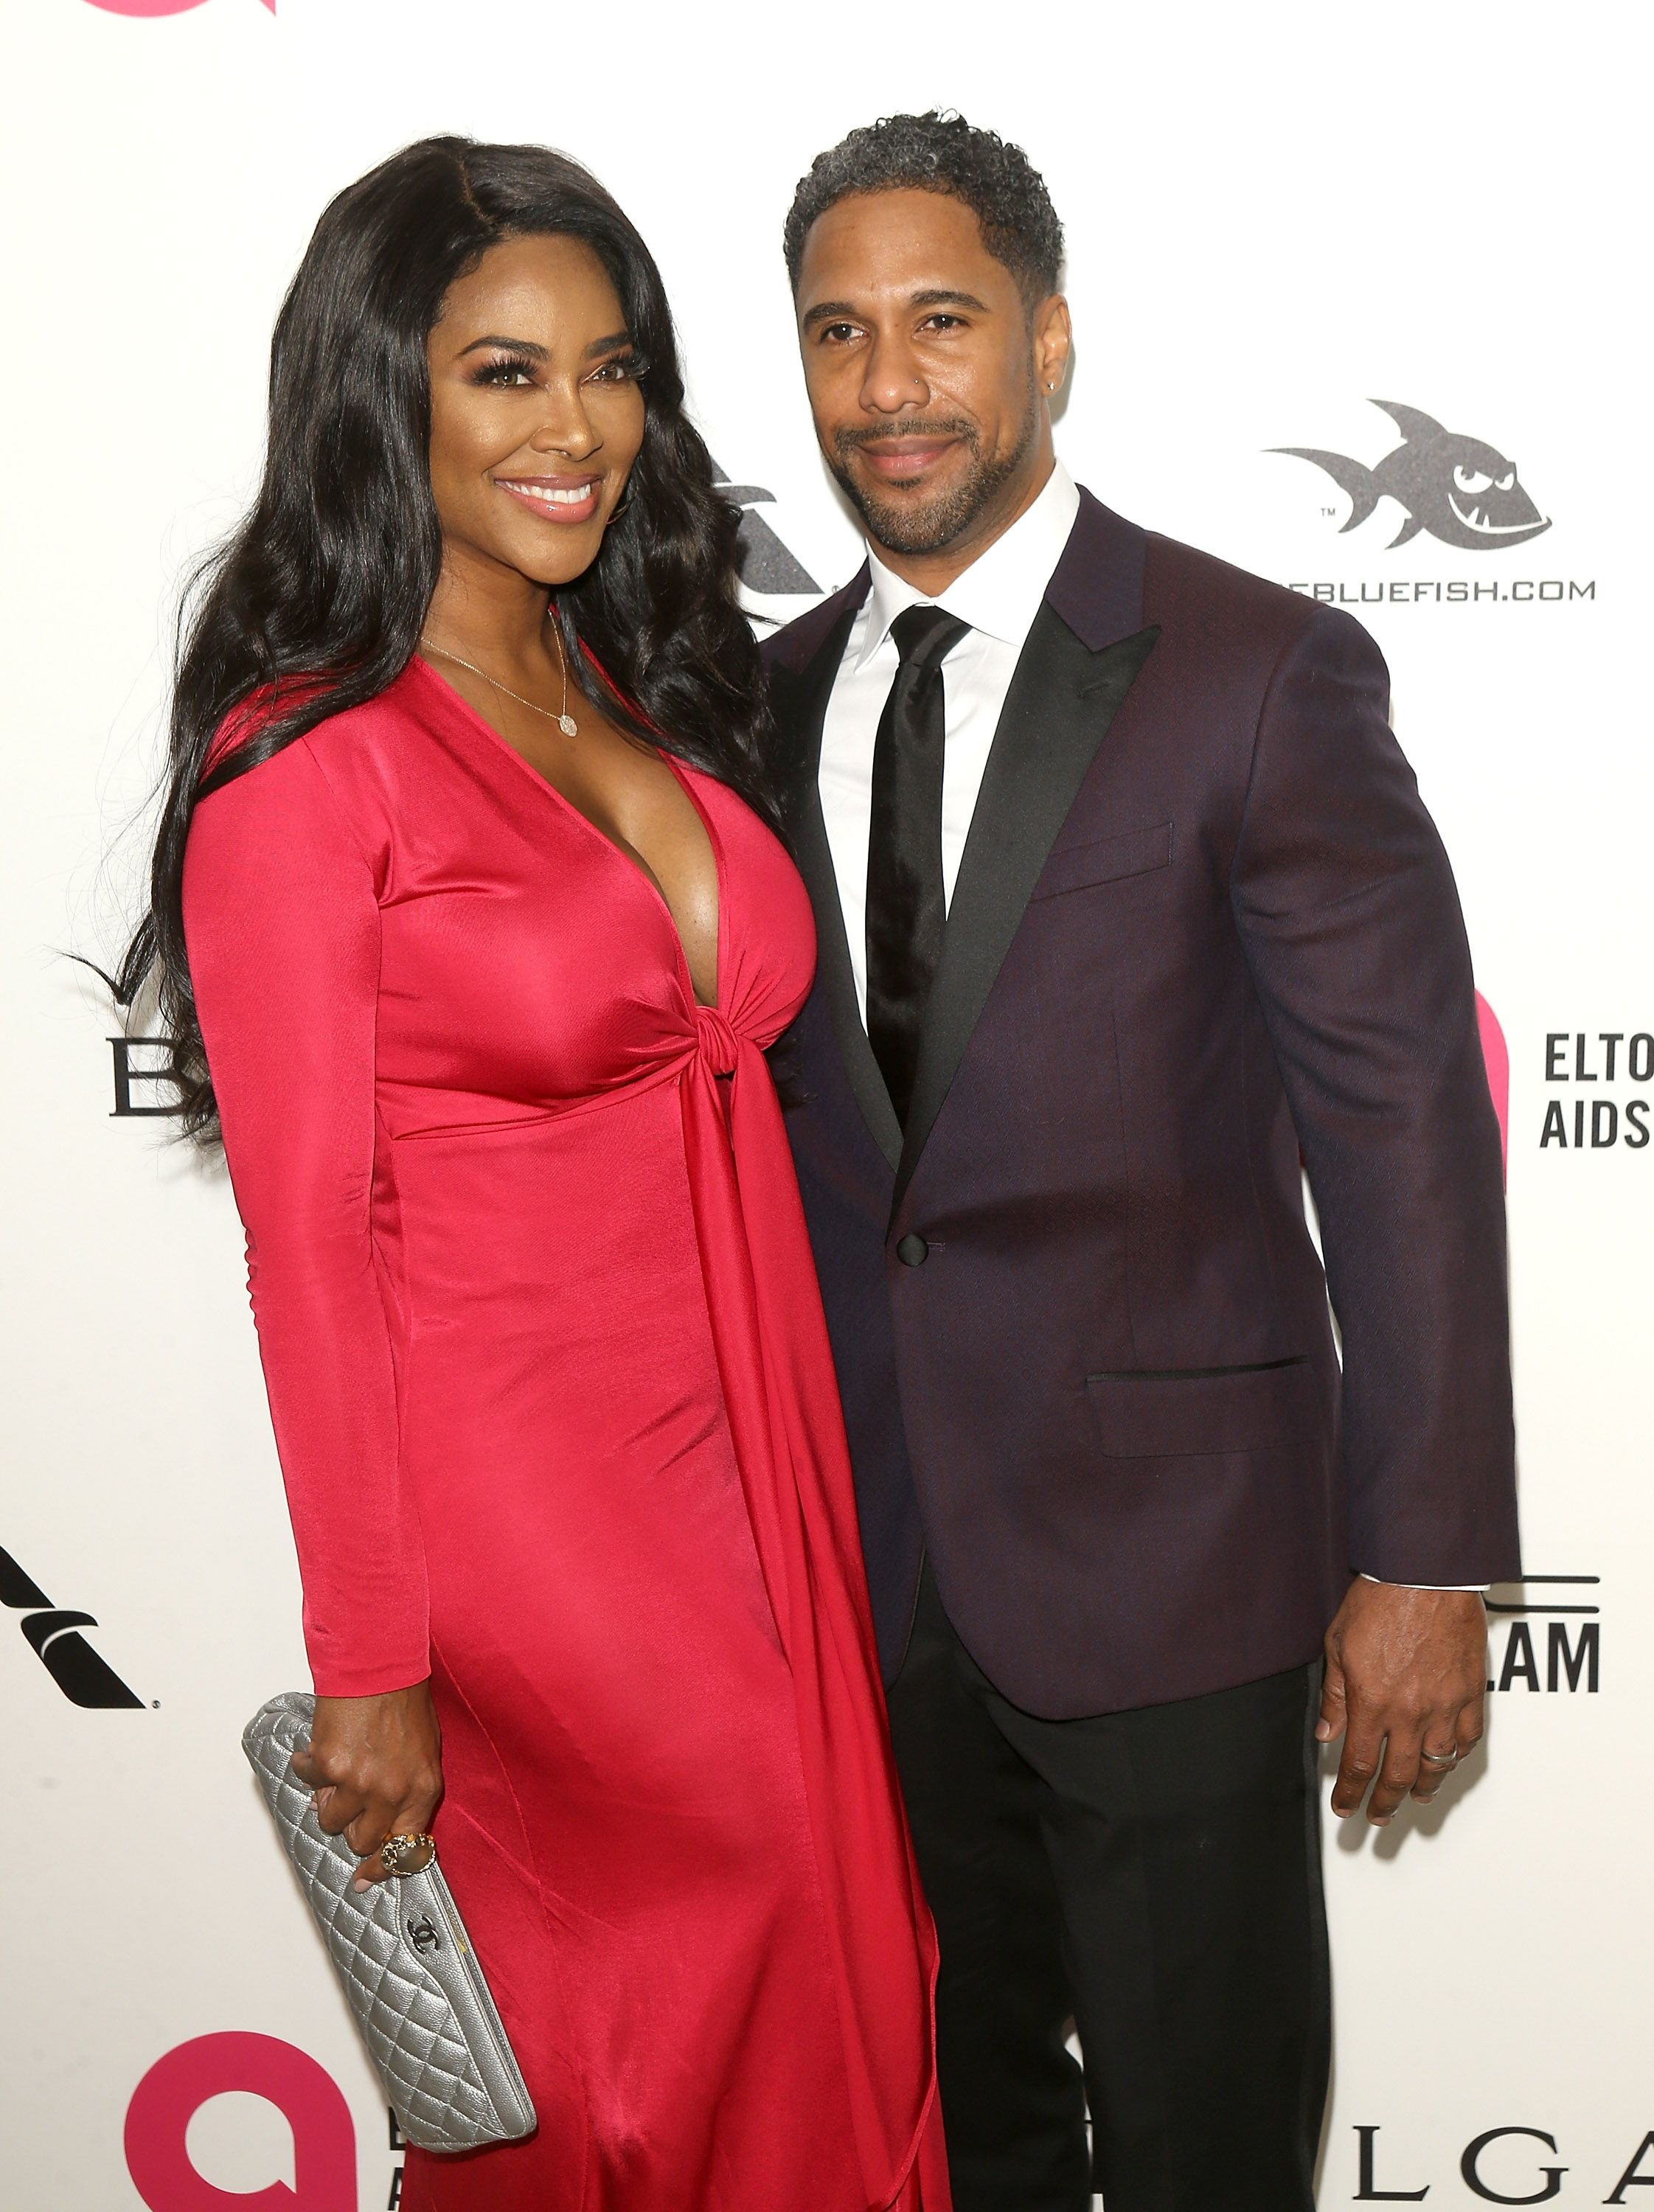 Kenya Moore and Marc Daly smiling